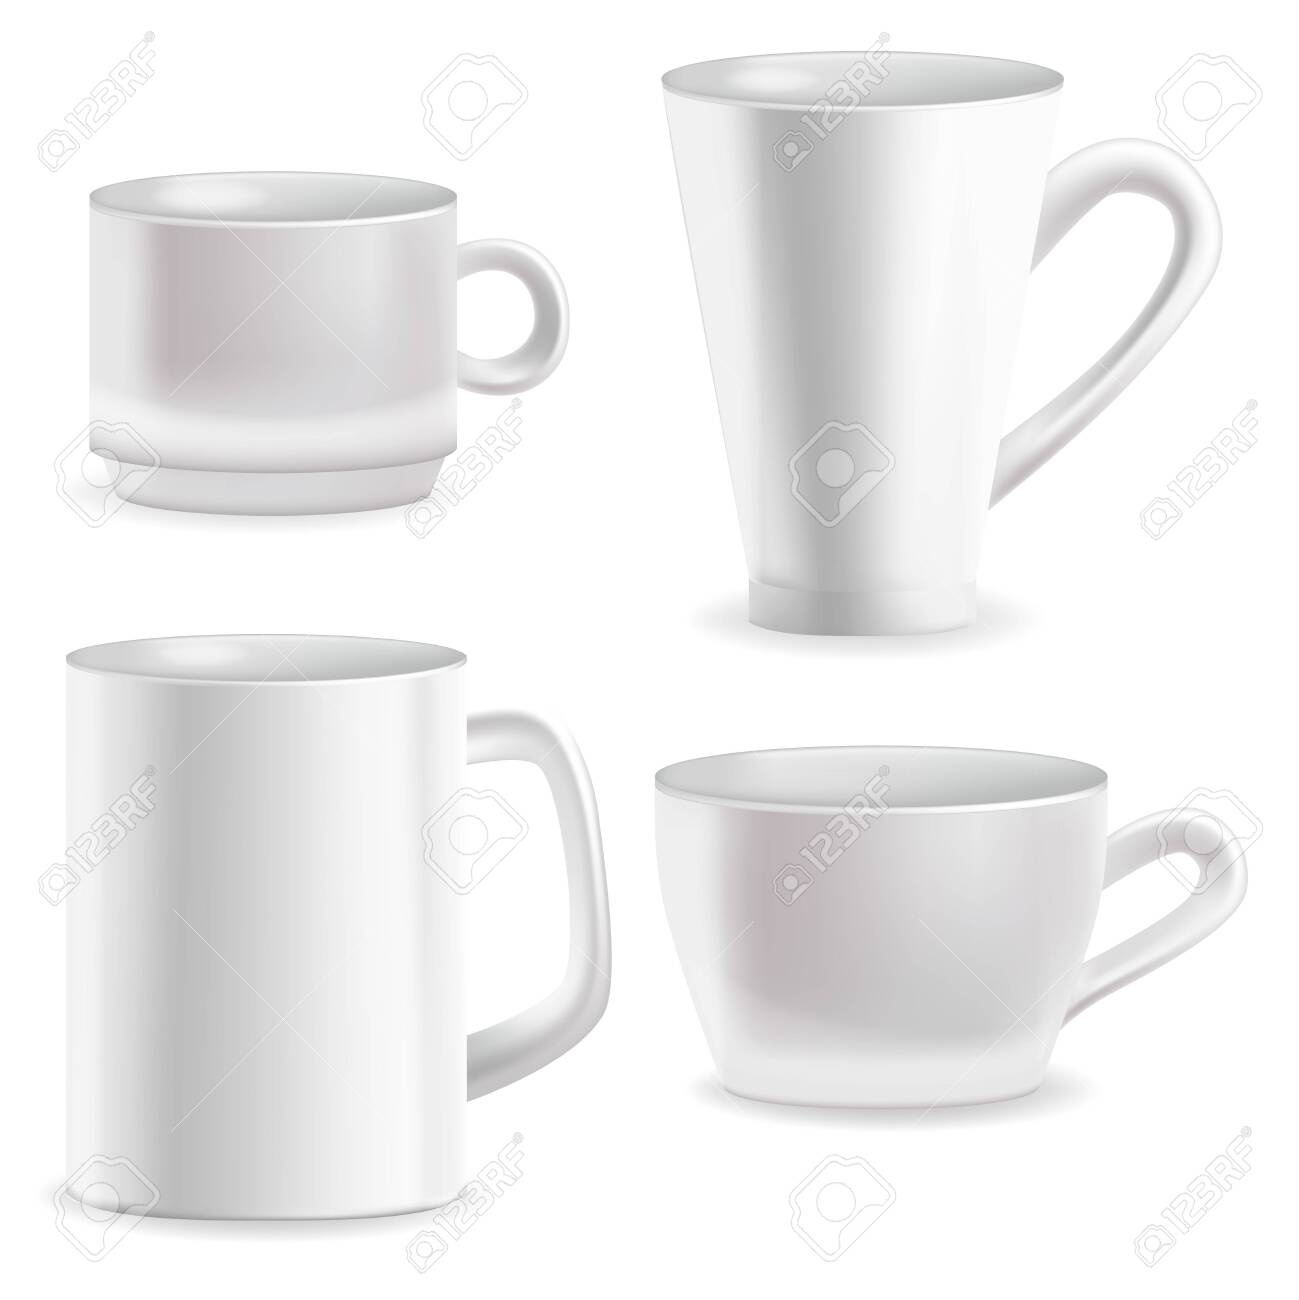 Realistic Detailed 3d Blank White Coffee Mugs Template Mockup Set. Vector - 143976840